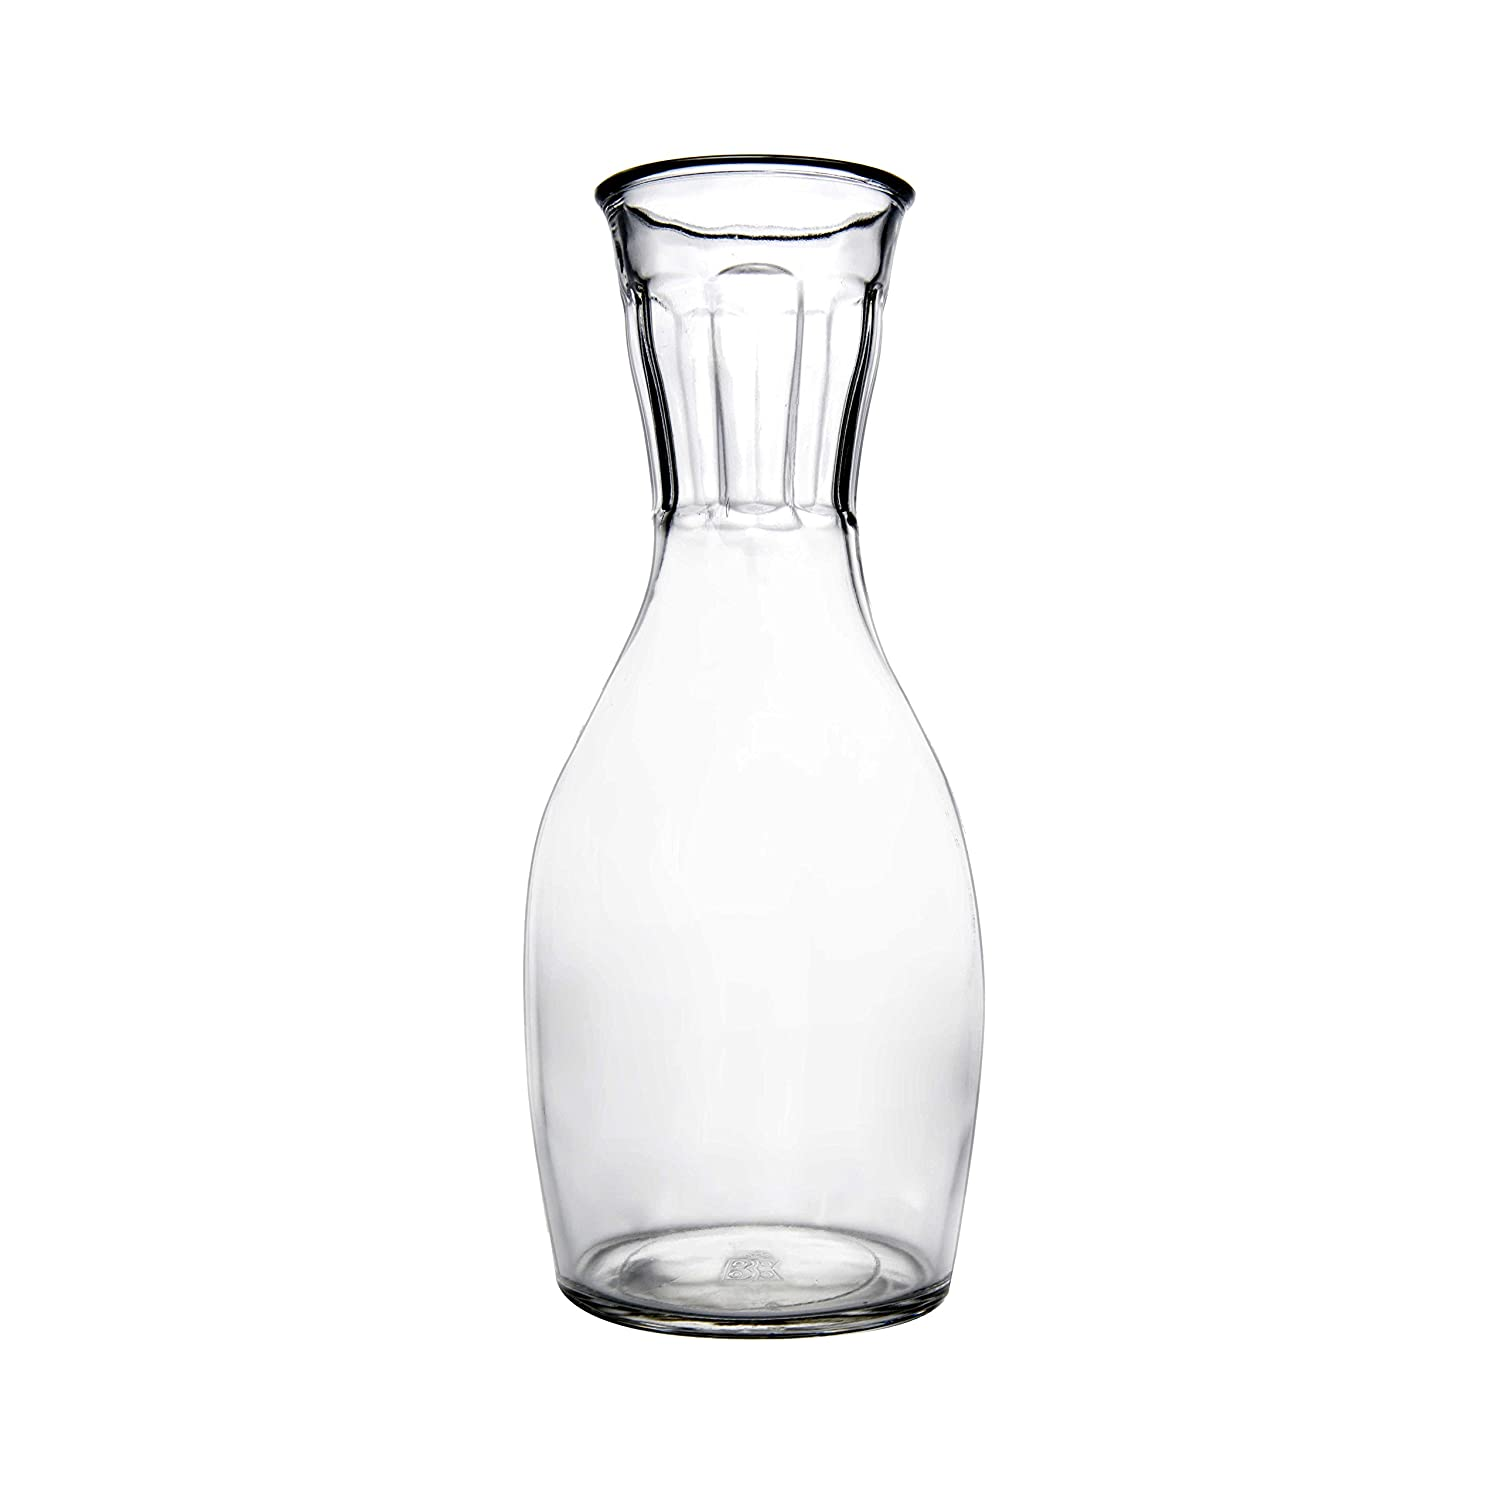 Duralex Picardie Carafe 1 Litre with 4 16 cl Duralex Picardie Glasses 5501AM06